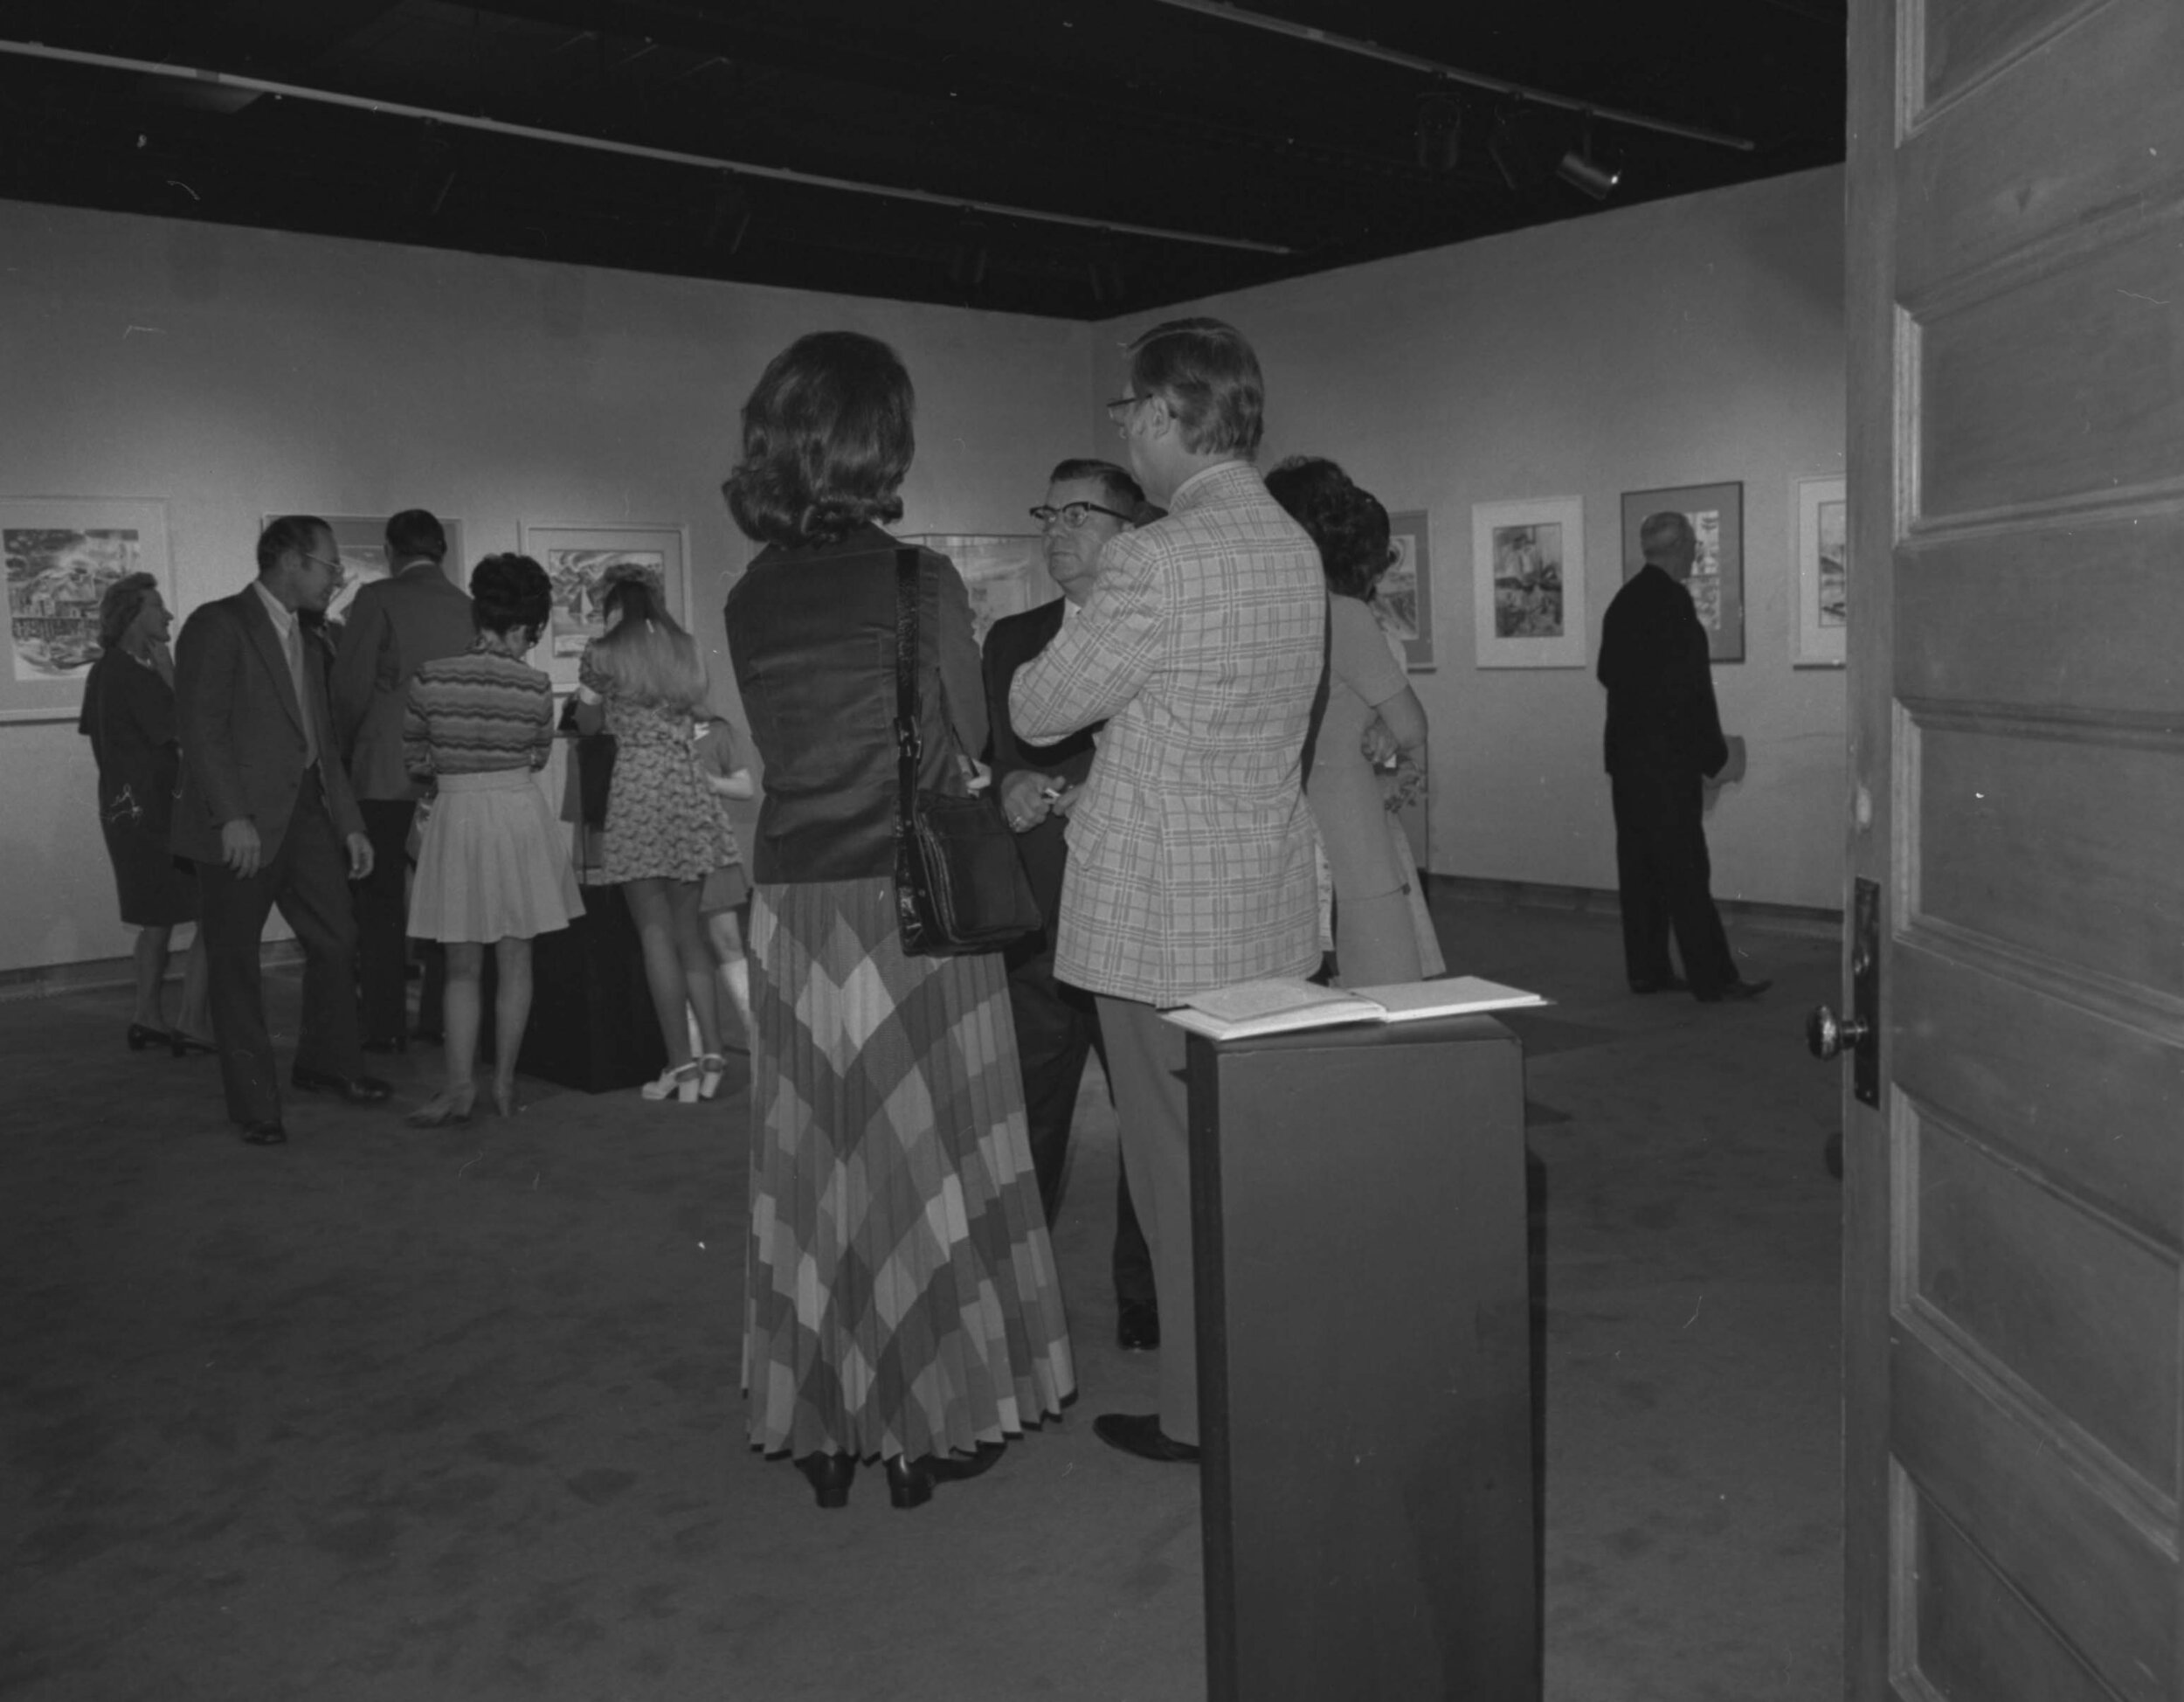 Mariani Gallery, Guggenheim Hall, UNC - The gallery opened in 1973, providing a space for student, faculty, and touring art exhibits. the above photo was taken during the Grand Opening event. (Image use courtesy of Special Collections, Michener Library, University of Northern Colorado.)